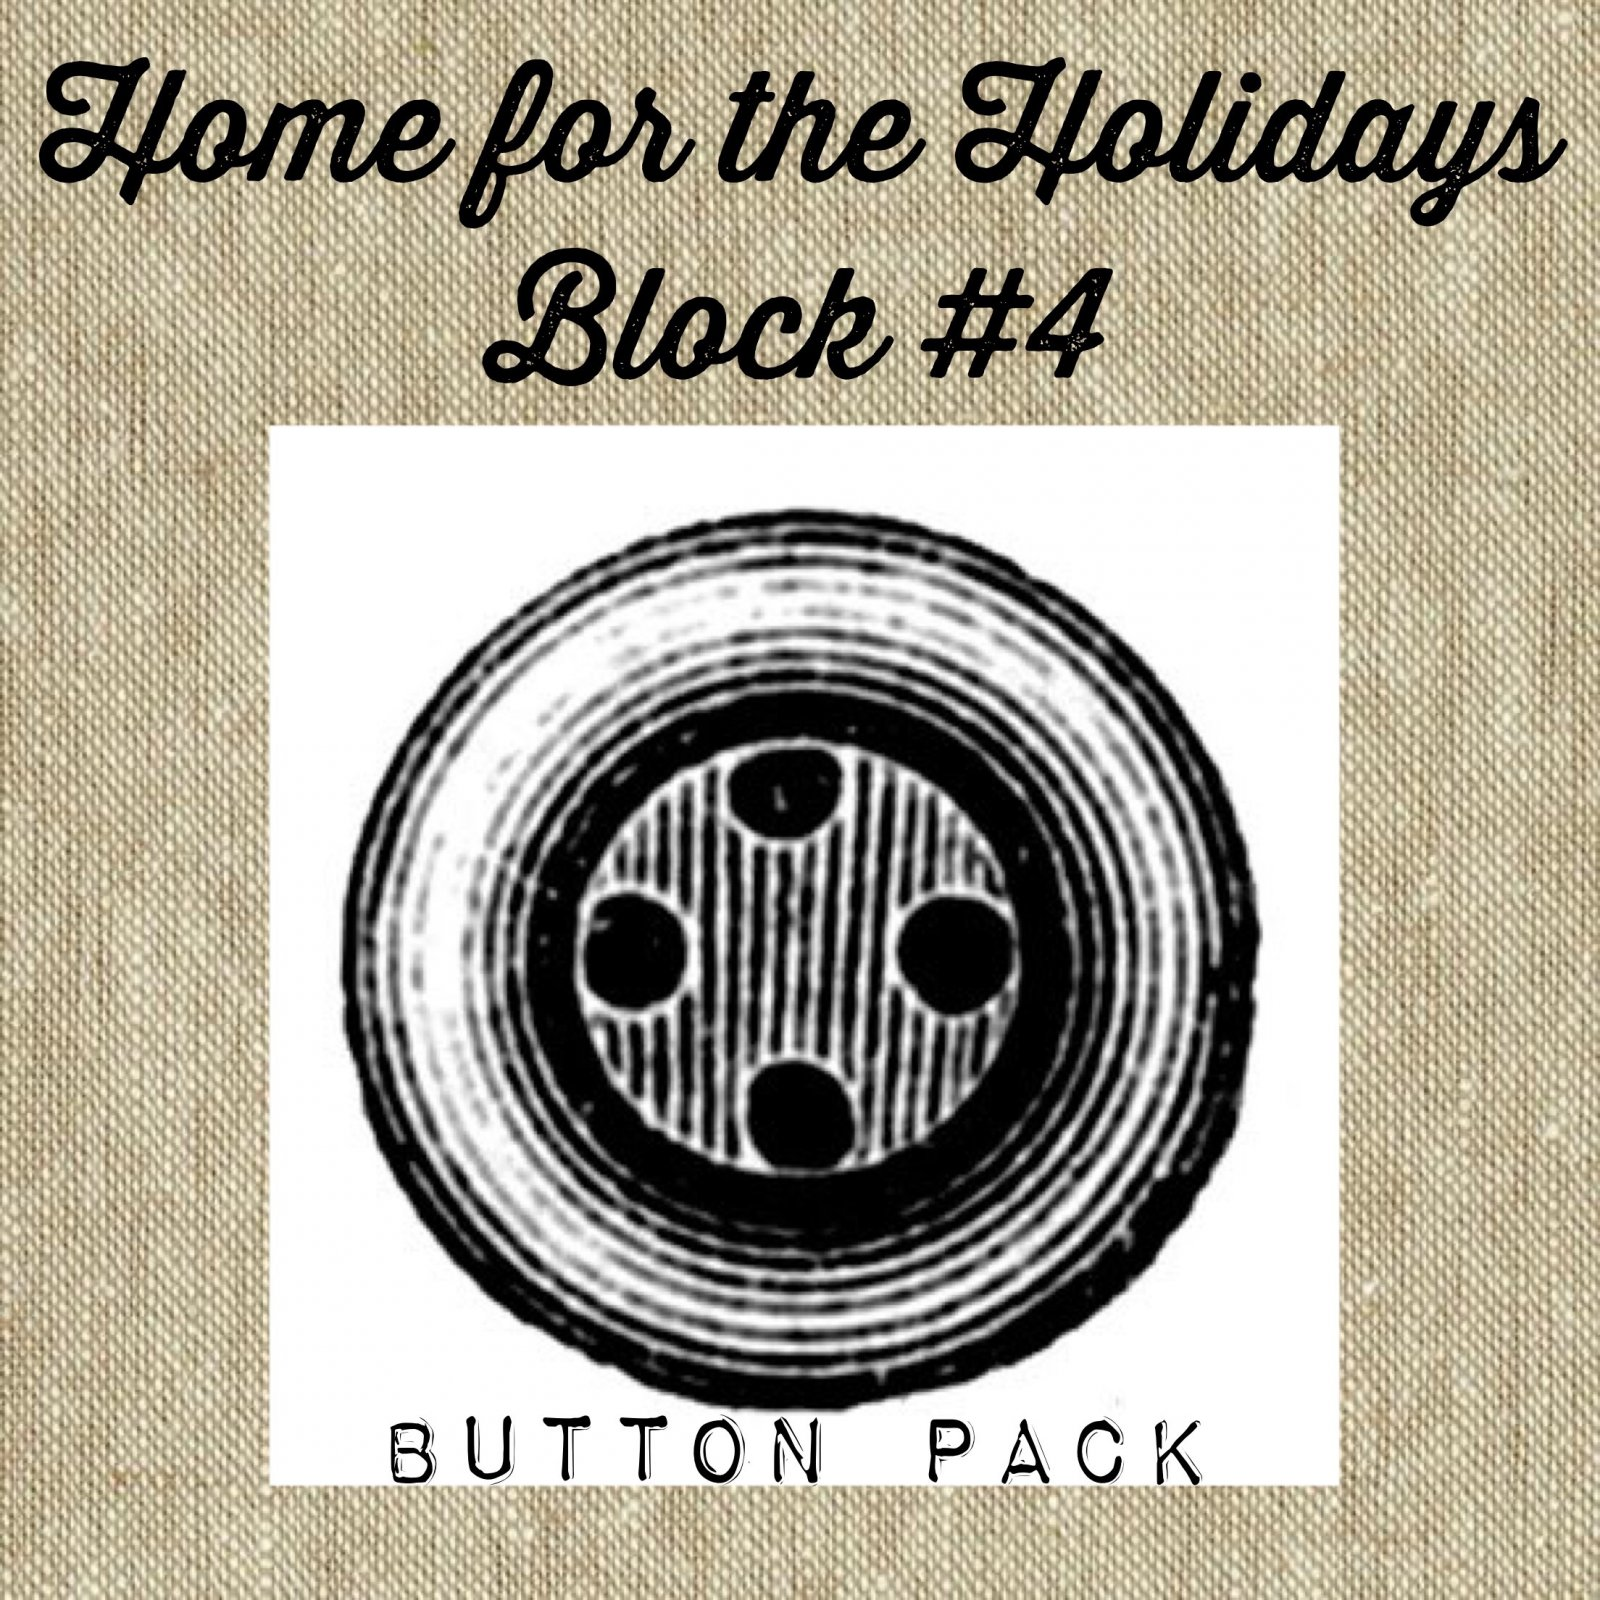 Home For The Holidays BOW! Block #4 Button Pack